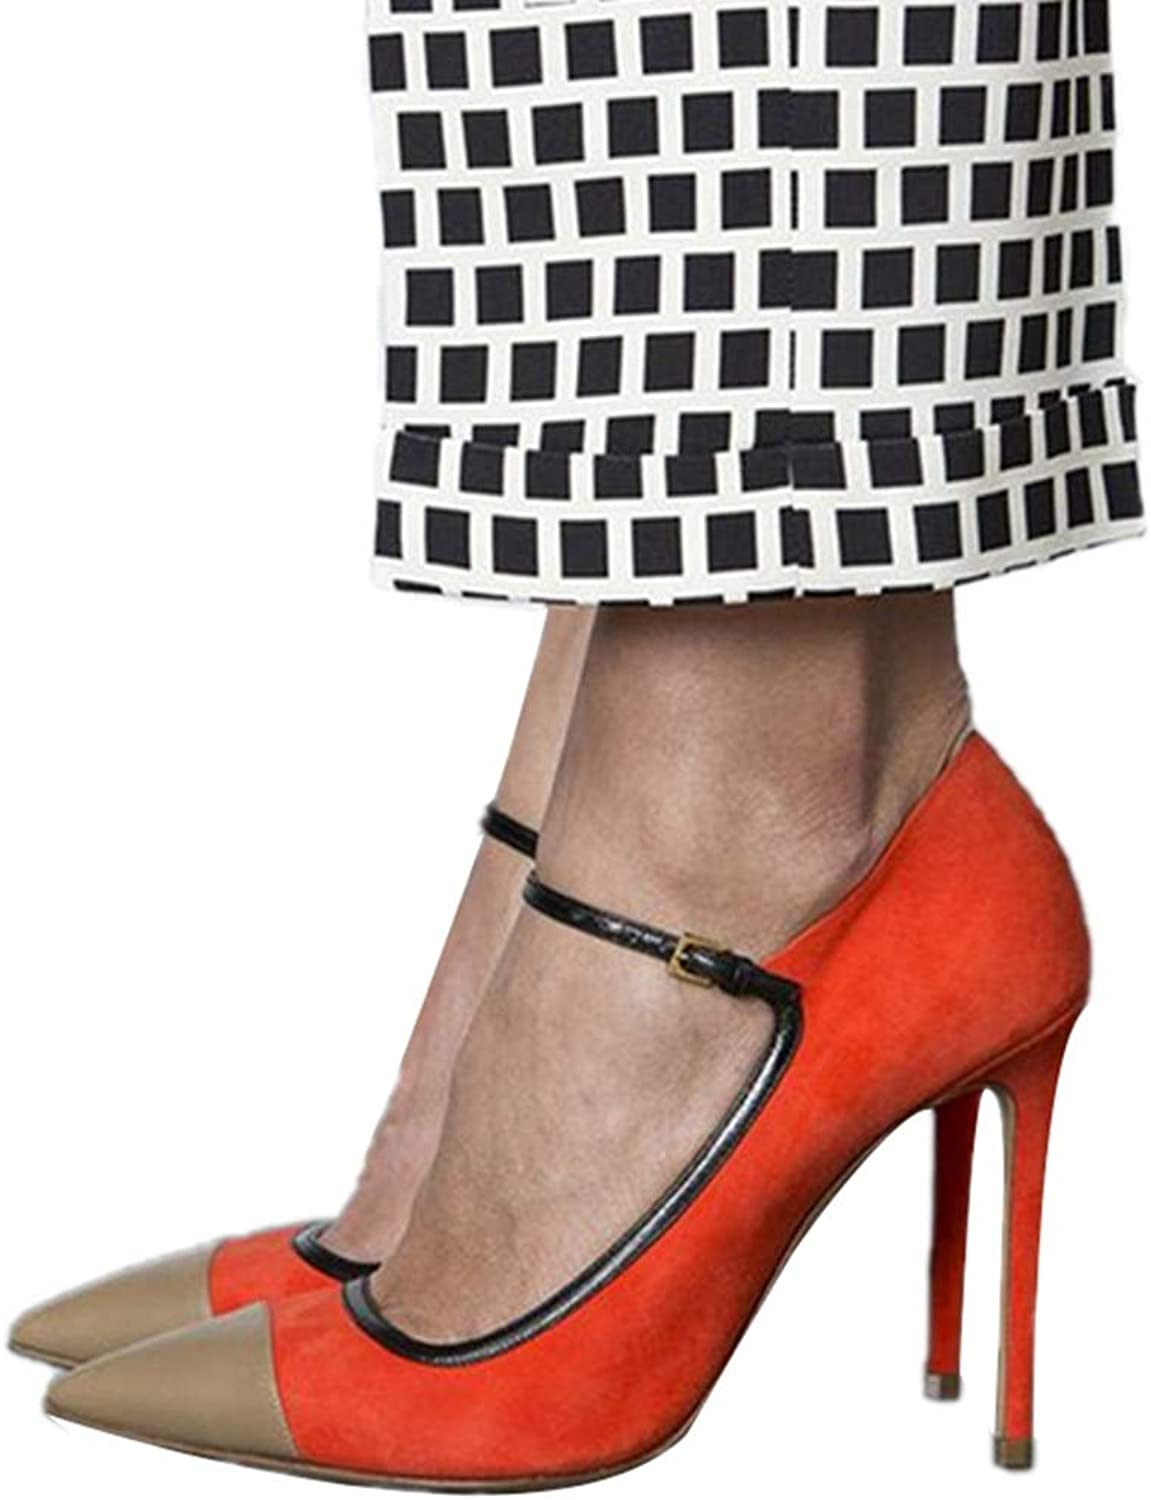 Women Buckle Sandal High Heel Contrast color Pointed Stiletto Spring Summer Lady Heeled Sandals